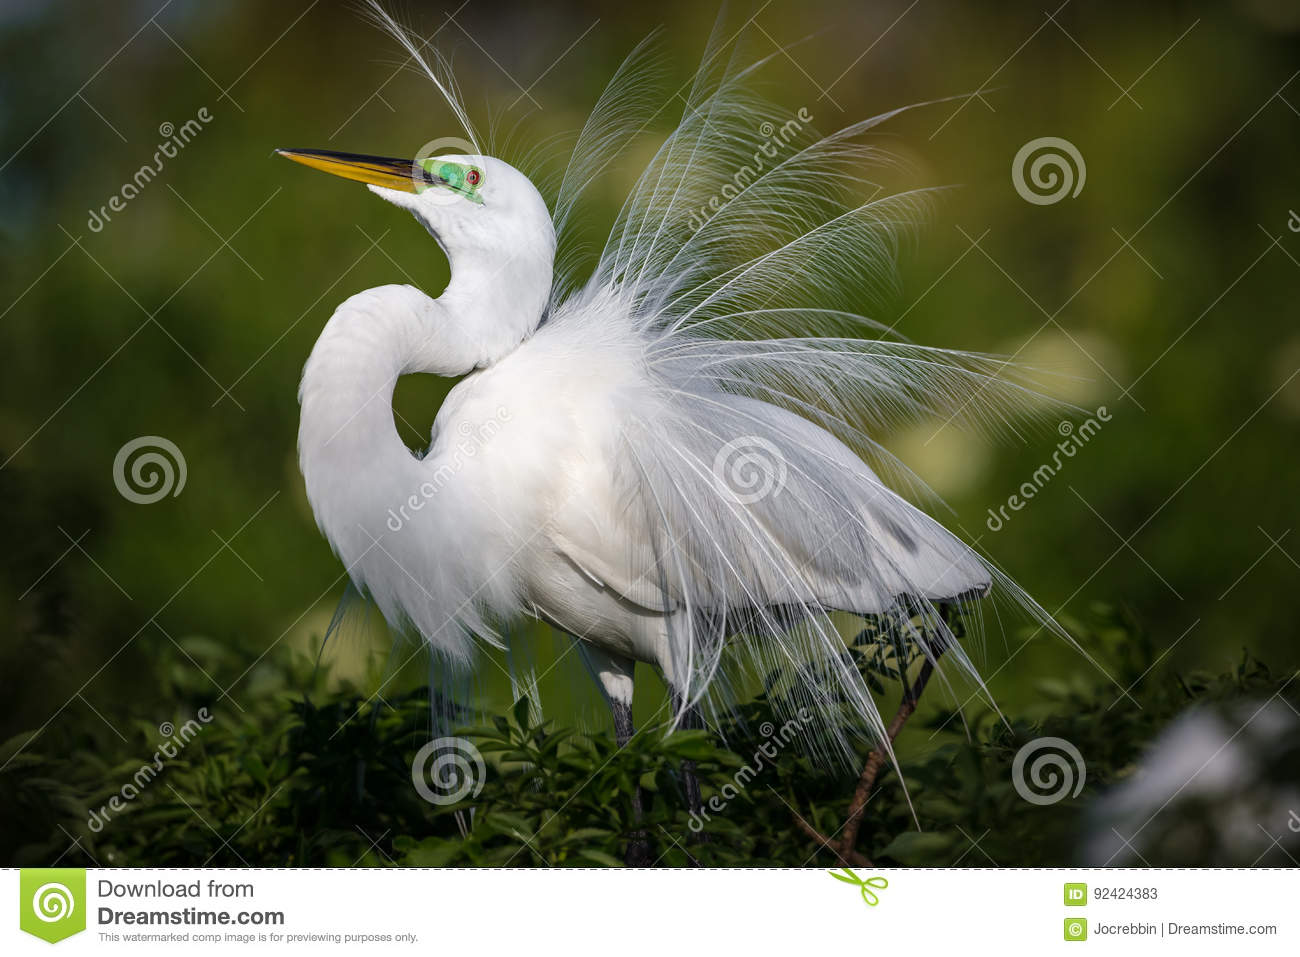 Beautiful white egret in breeding plumage fluffs up his feathers on display